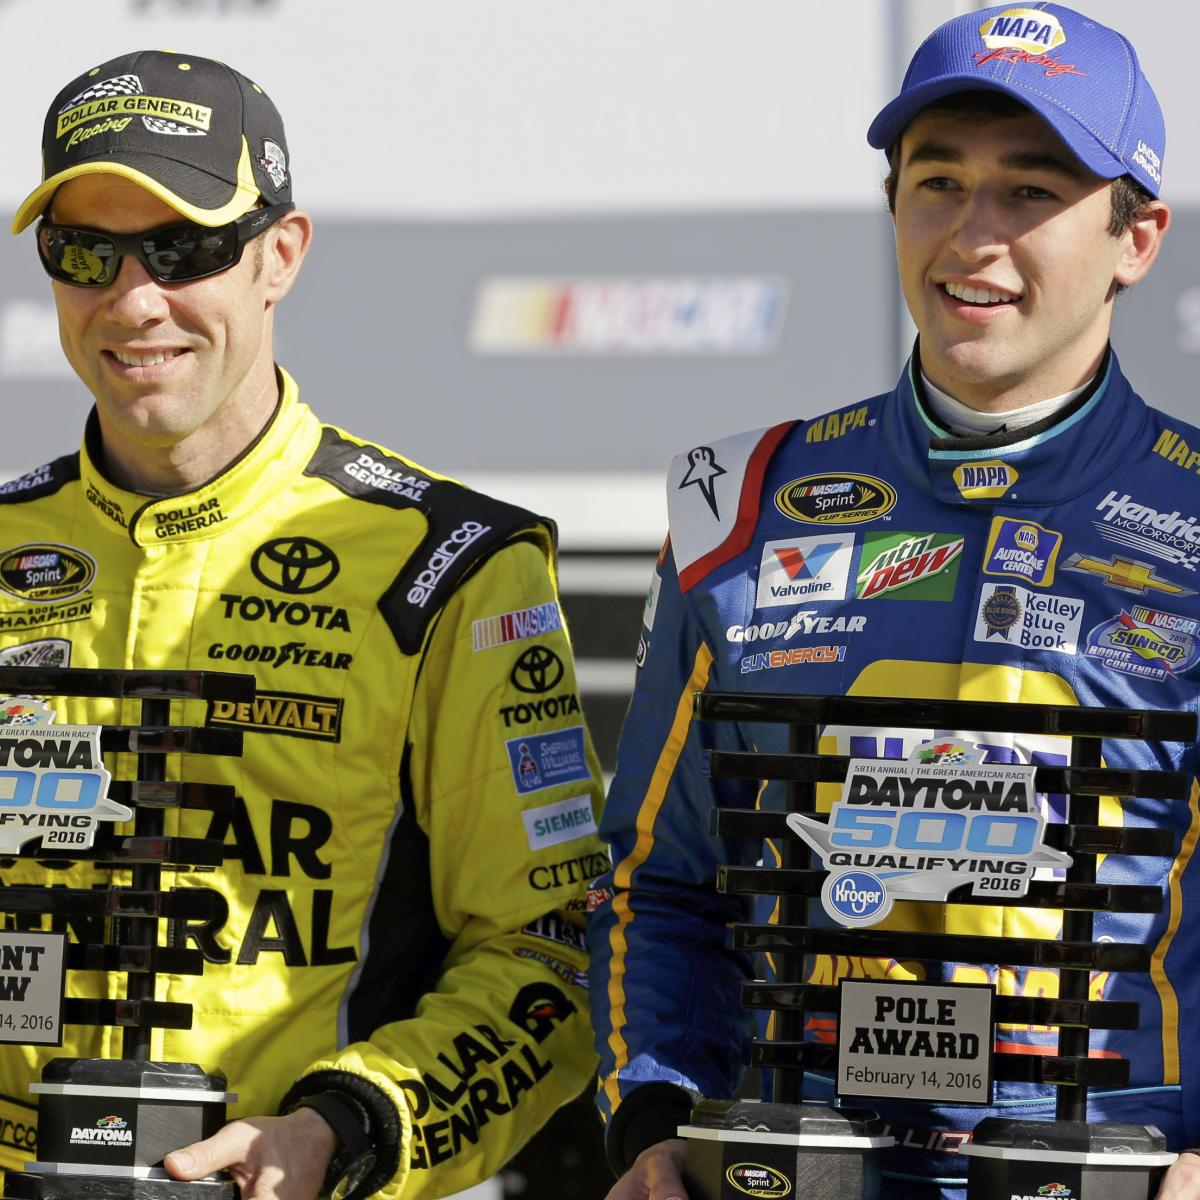 Daytona 500 2016: Complete Schedule, TV Info for NASCAR Opener